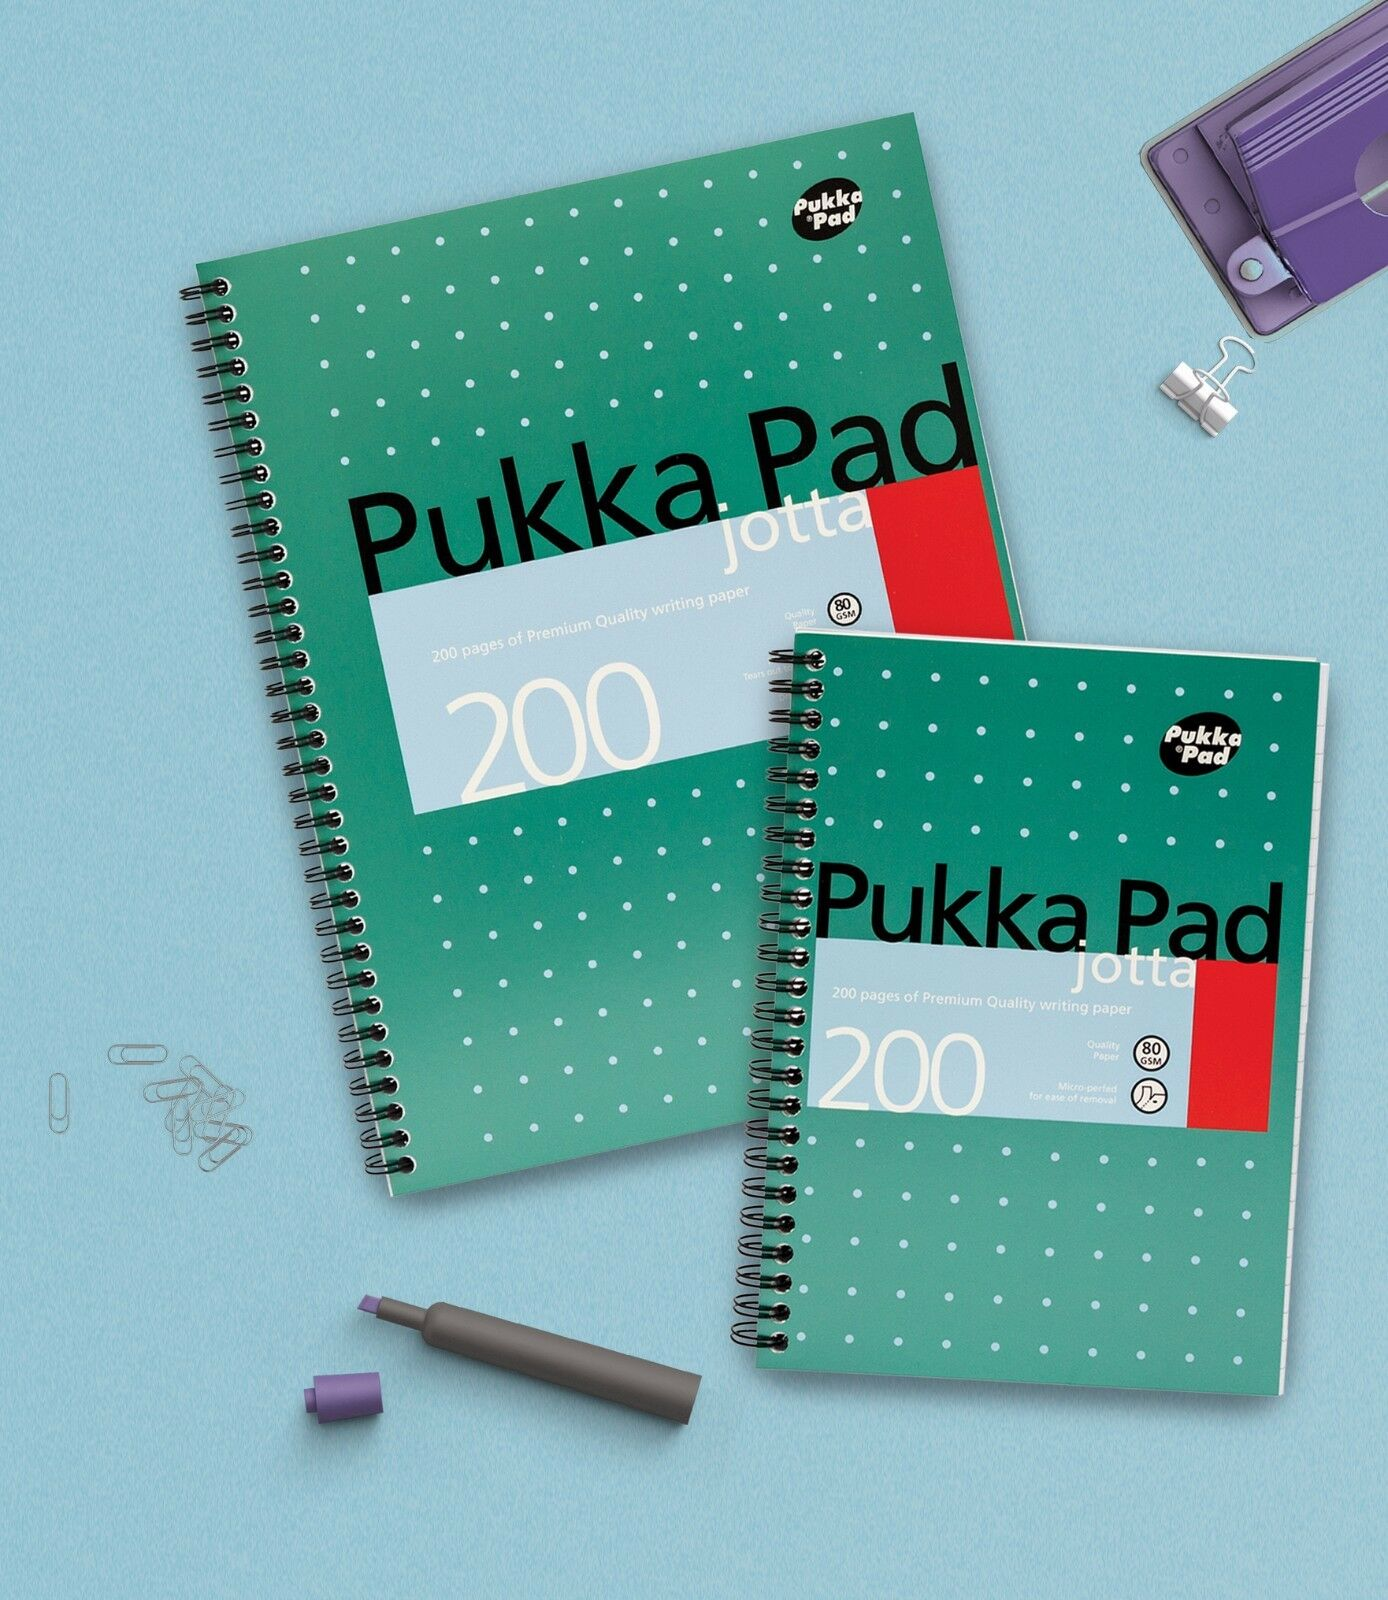 PUKKA PAD JOTTA QTY 6x 200 PAGE A5 BINDED PADS PREMIUM QUALITY WRITING PAPER NEW